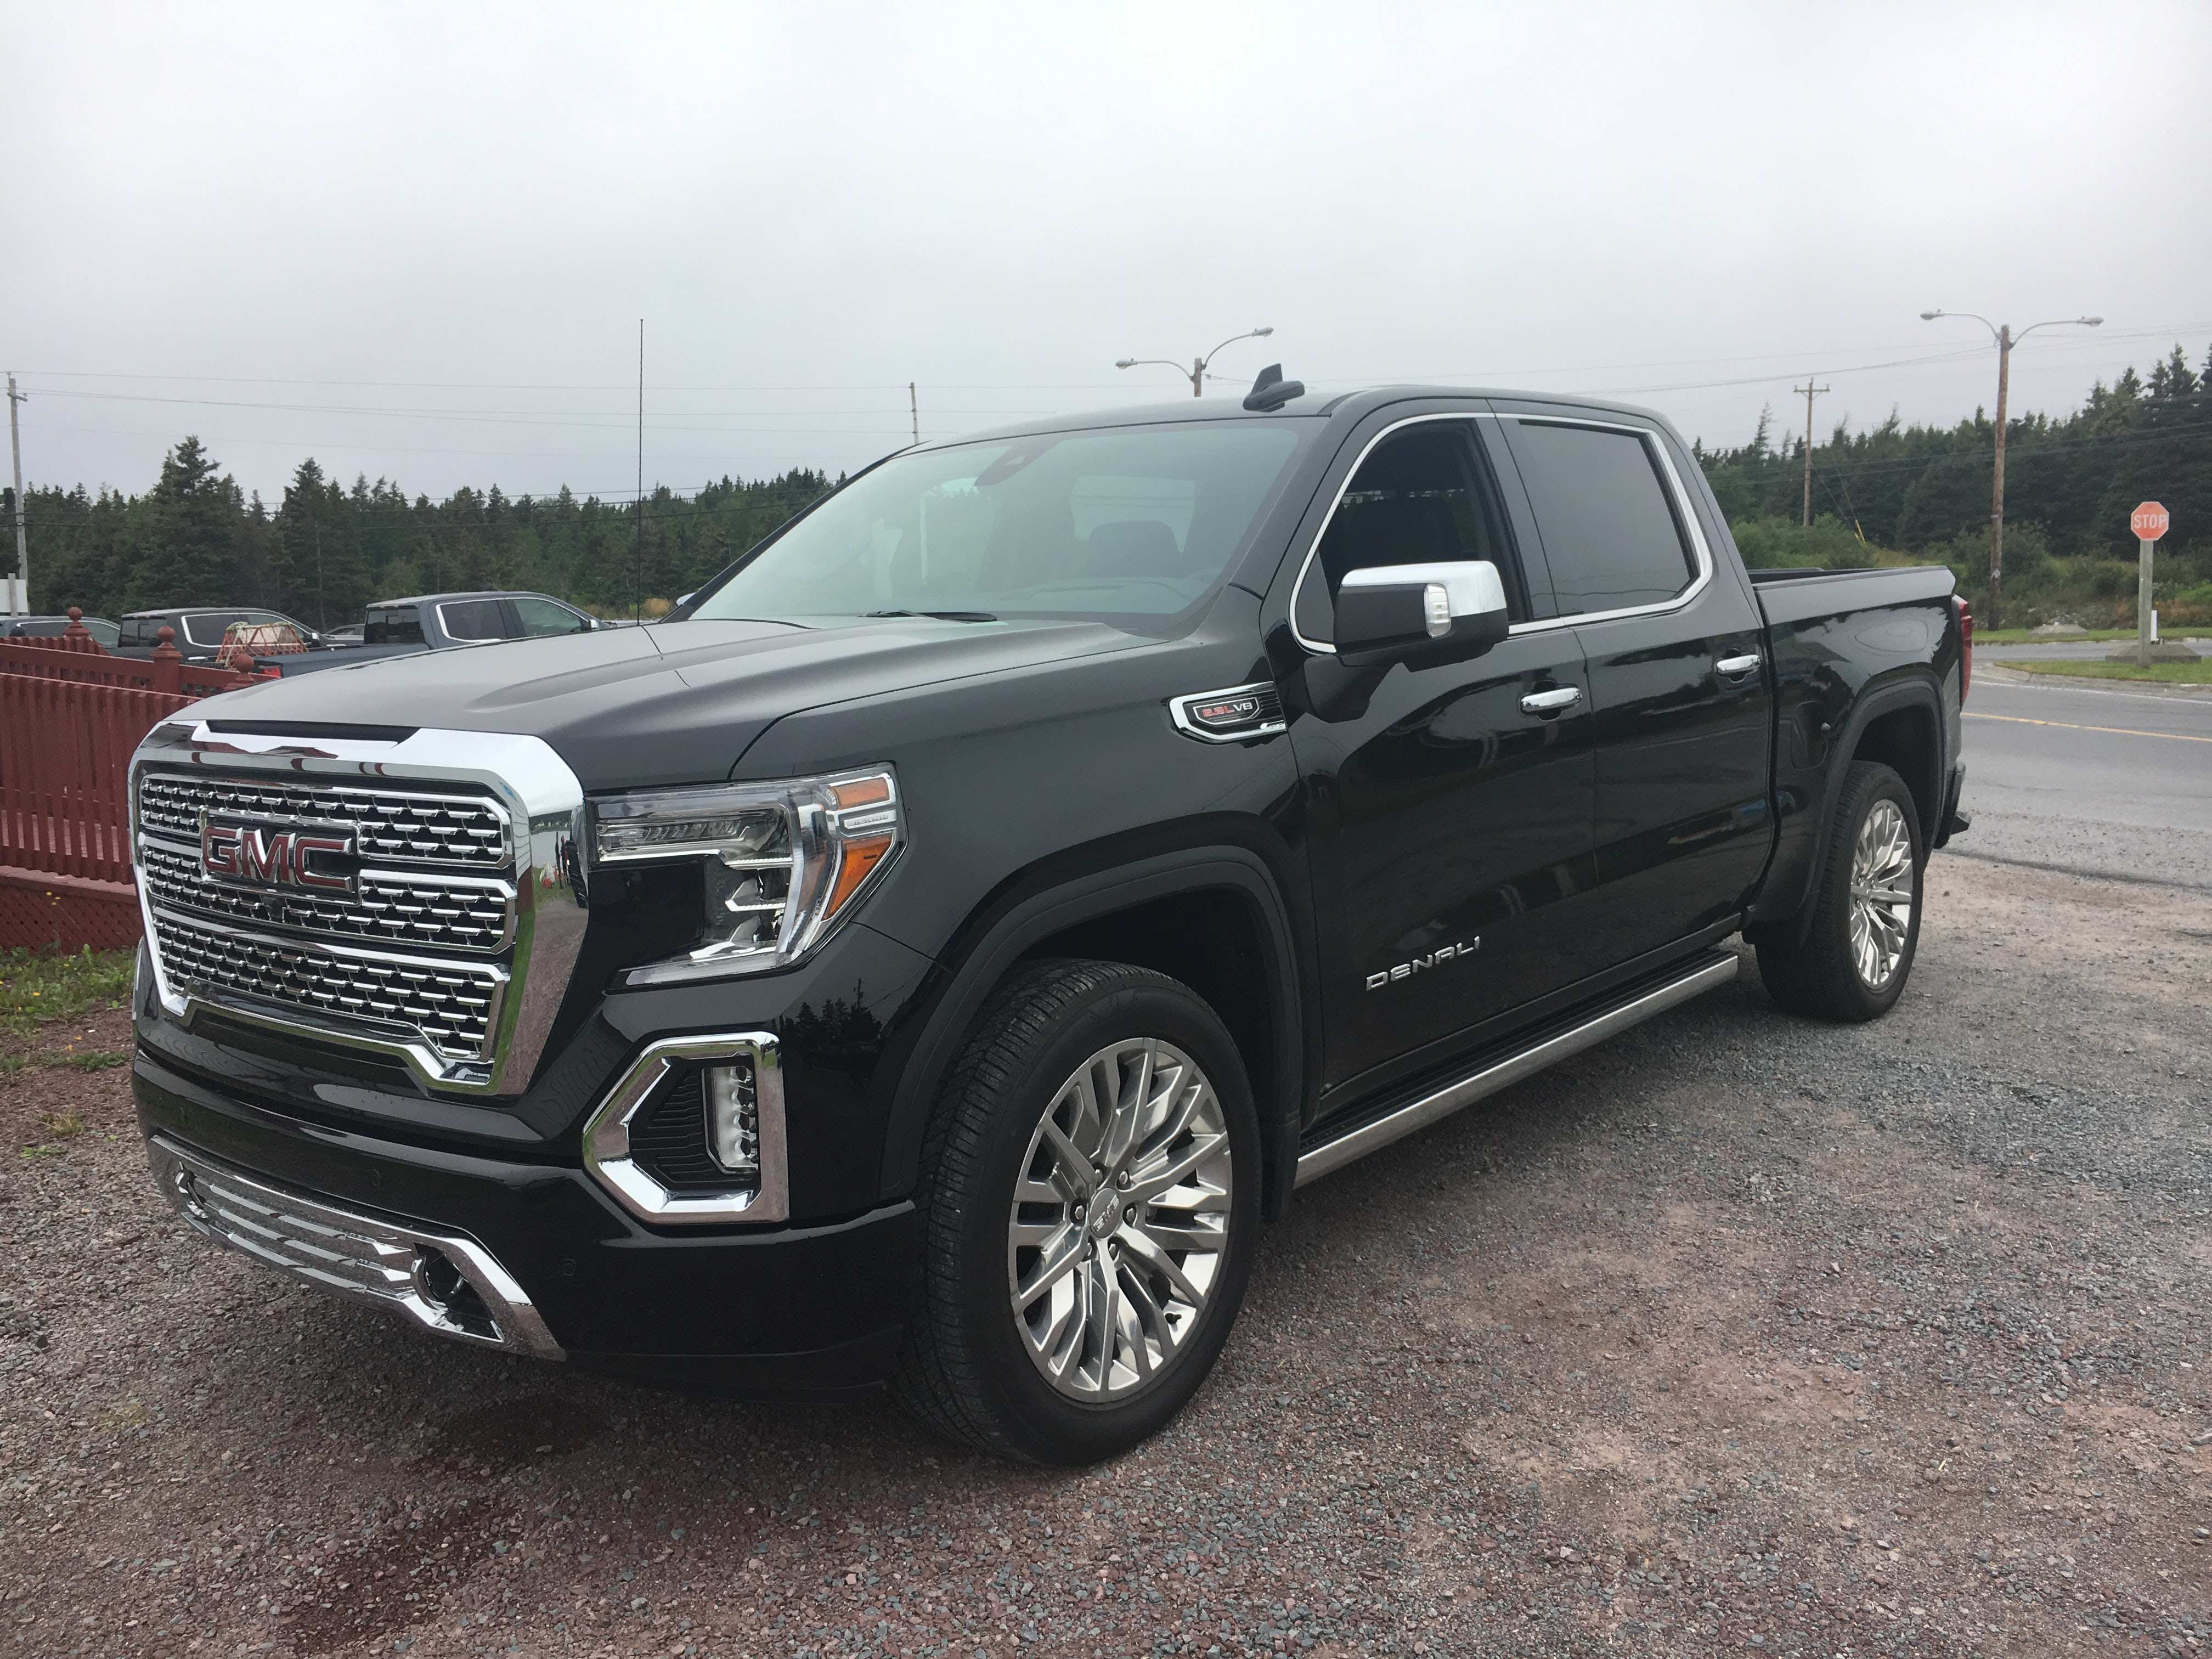 54 Best Review Tailgate On 2019 Gmc Sierra First Drive Spesification by Tailgate On 2019 Gmc Sierra First Drive